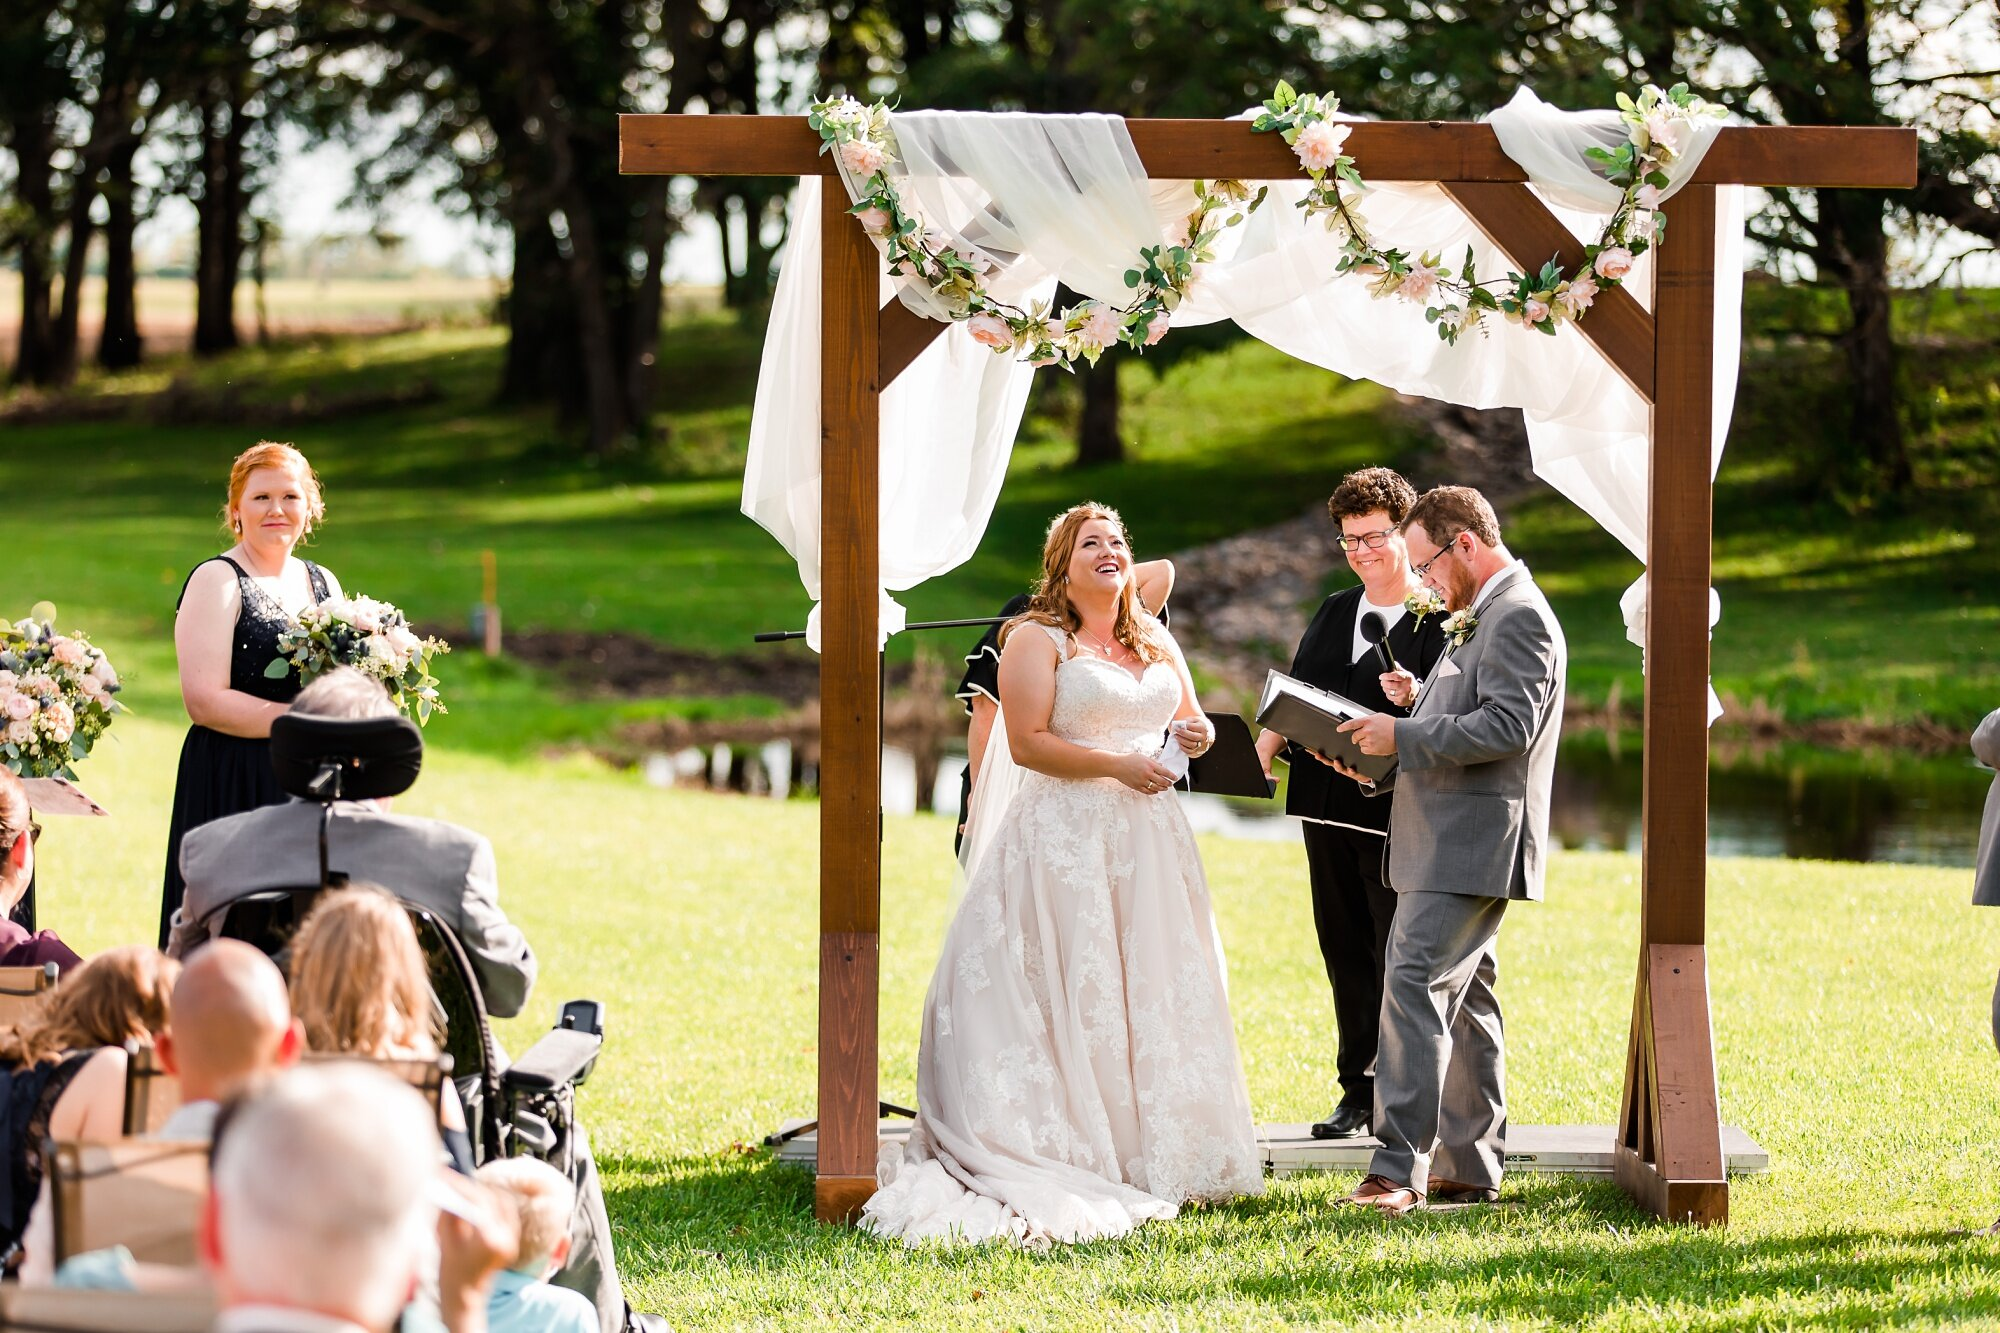 Amber Langerud Photography_Lake Park Minnesota, Outdoor Barn Wedding With Horses_6990.jpg